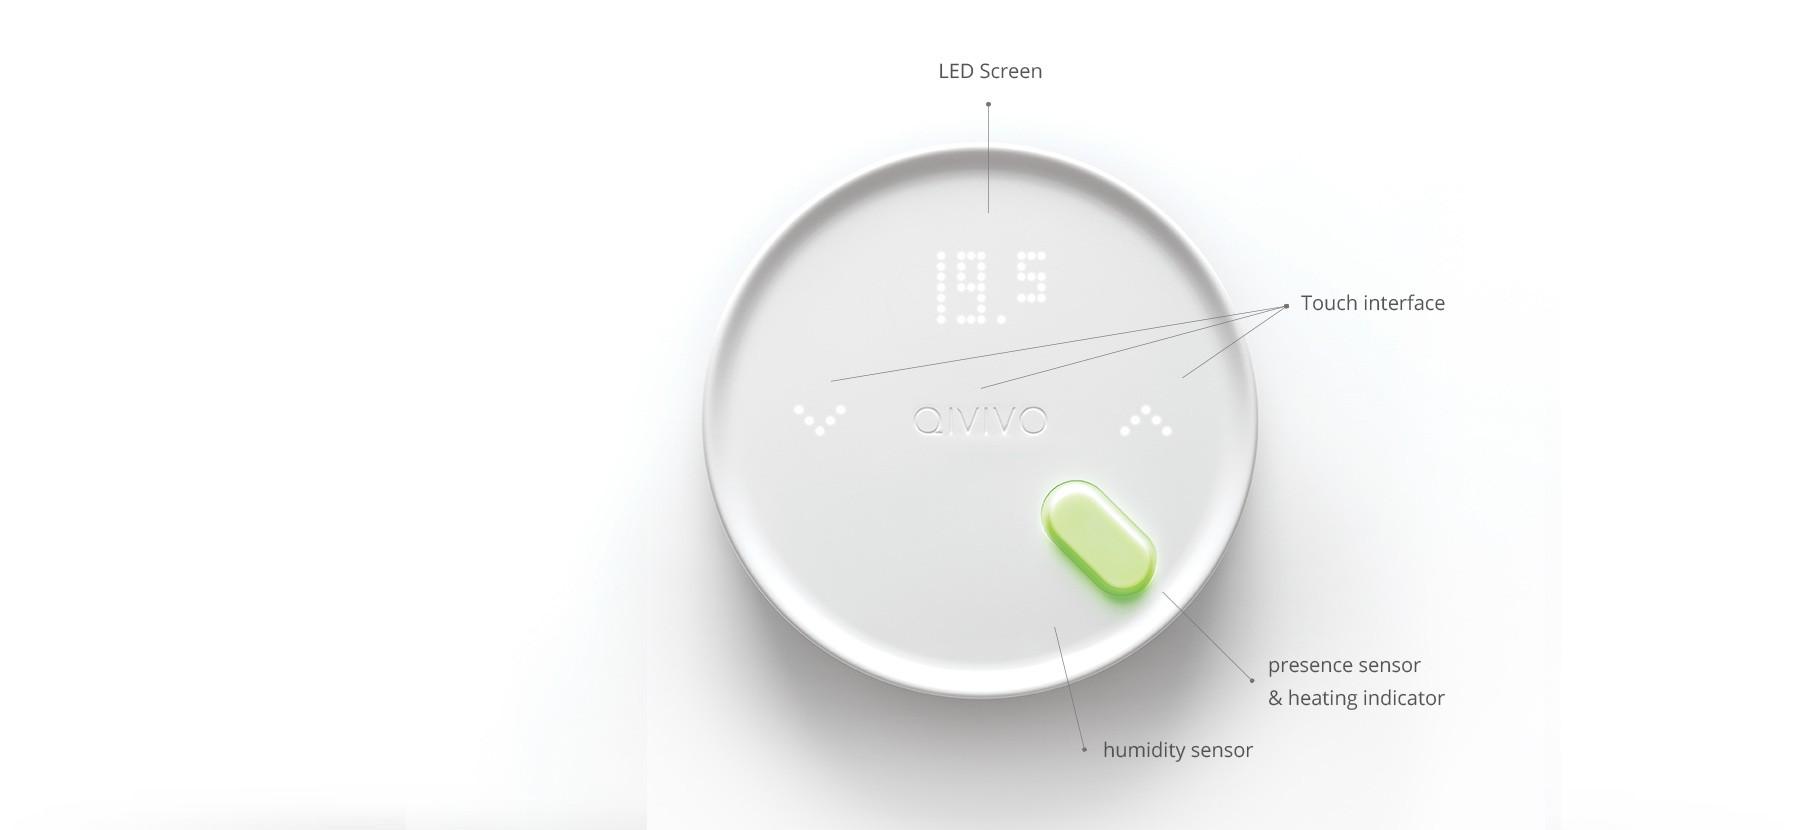 White round Thermostat, with stylish design, LED screen, tactile interface on 3 areas, capteur de présence, heating indicator and humidity captor inside